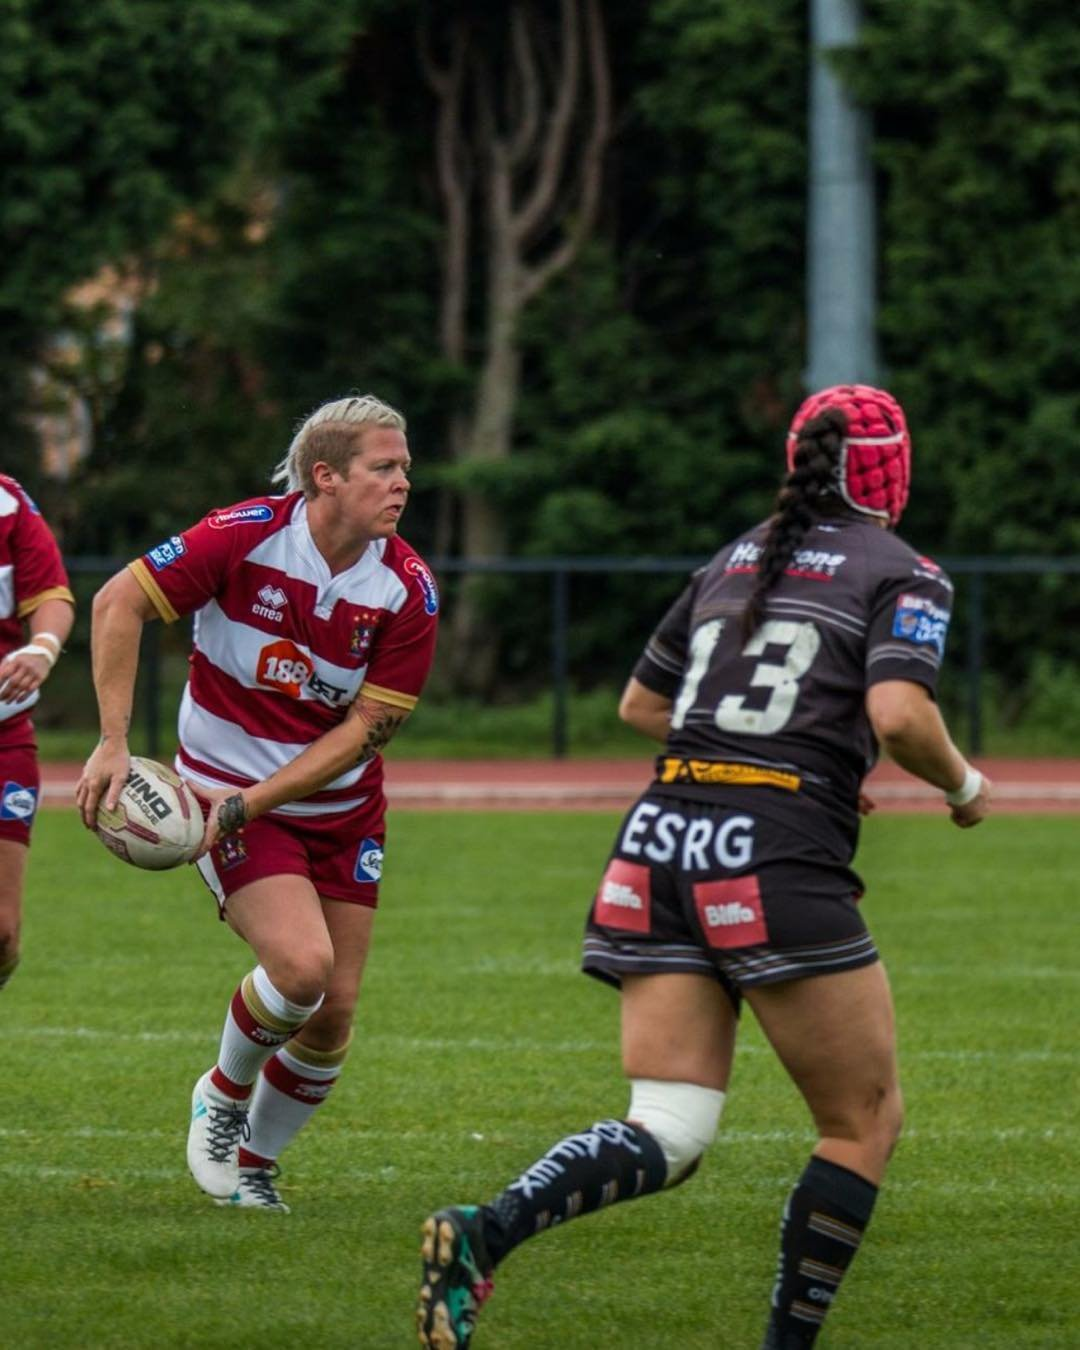 Rugby league's Gemma Walsh to join wife Emily Rudge at St Helens in the WSL this season